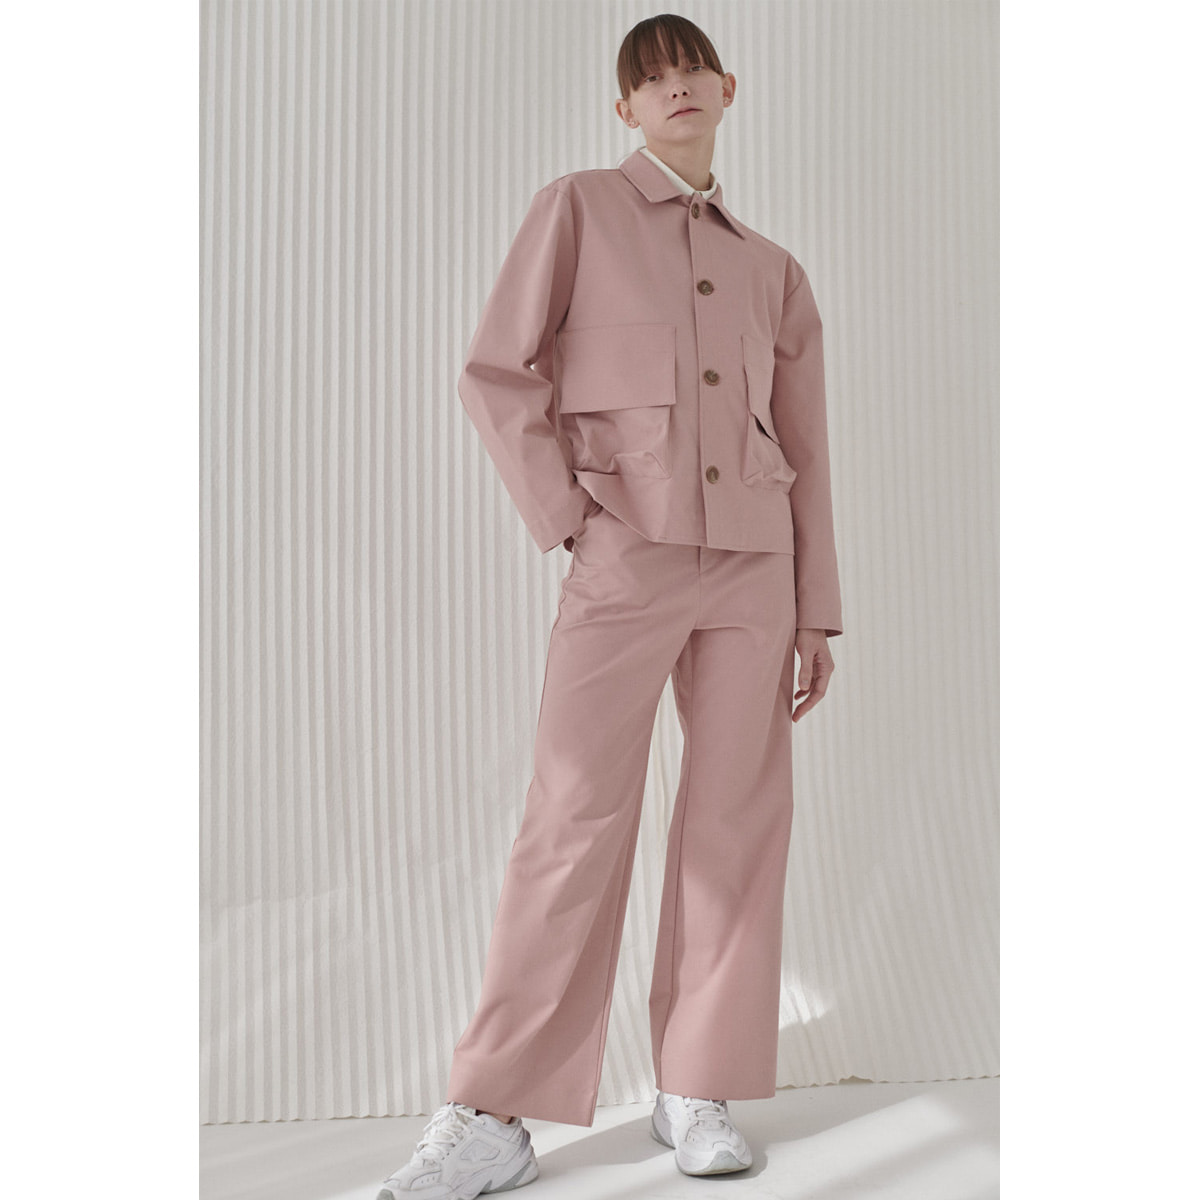 POCKETO TROUSERS | dusty pink | 3.20 발송예정